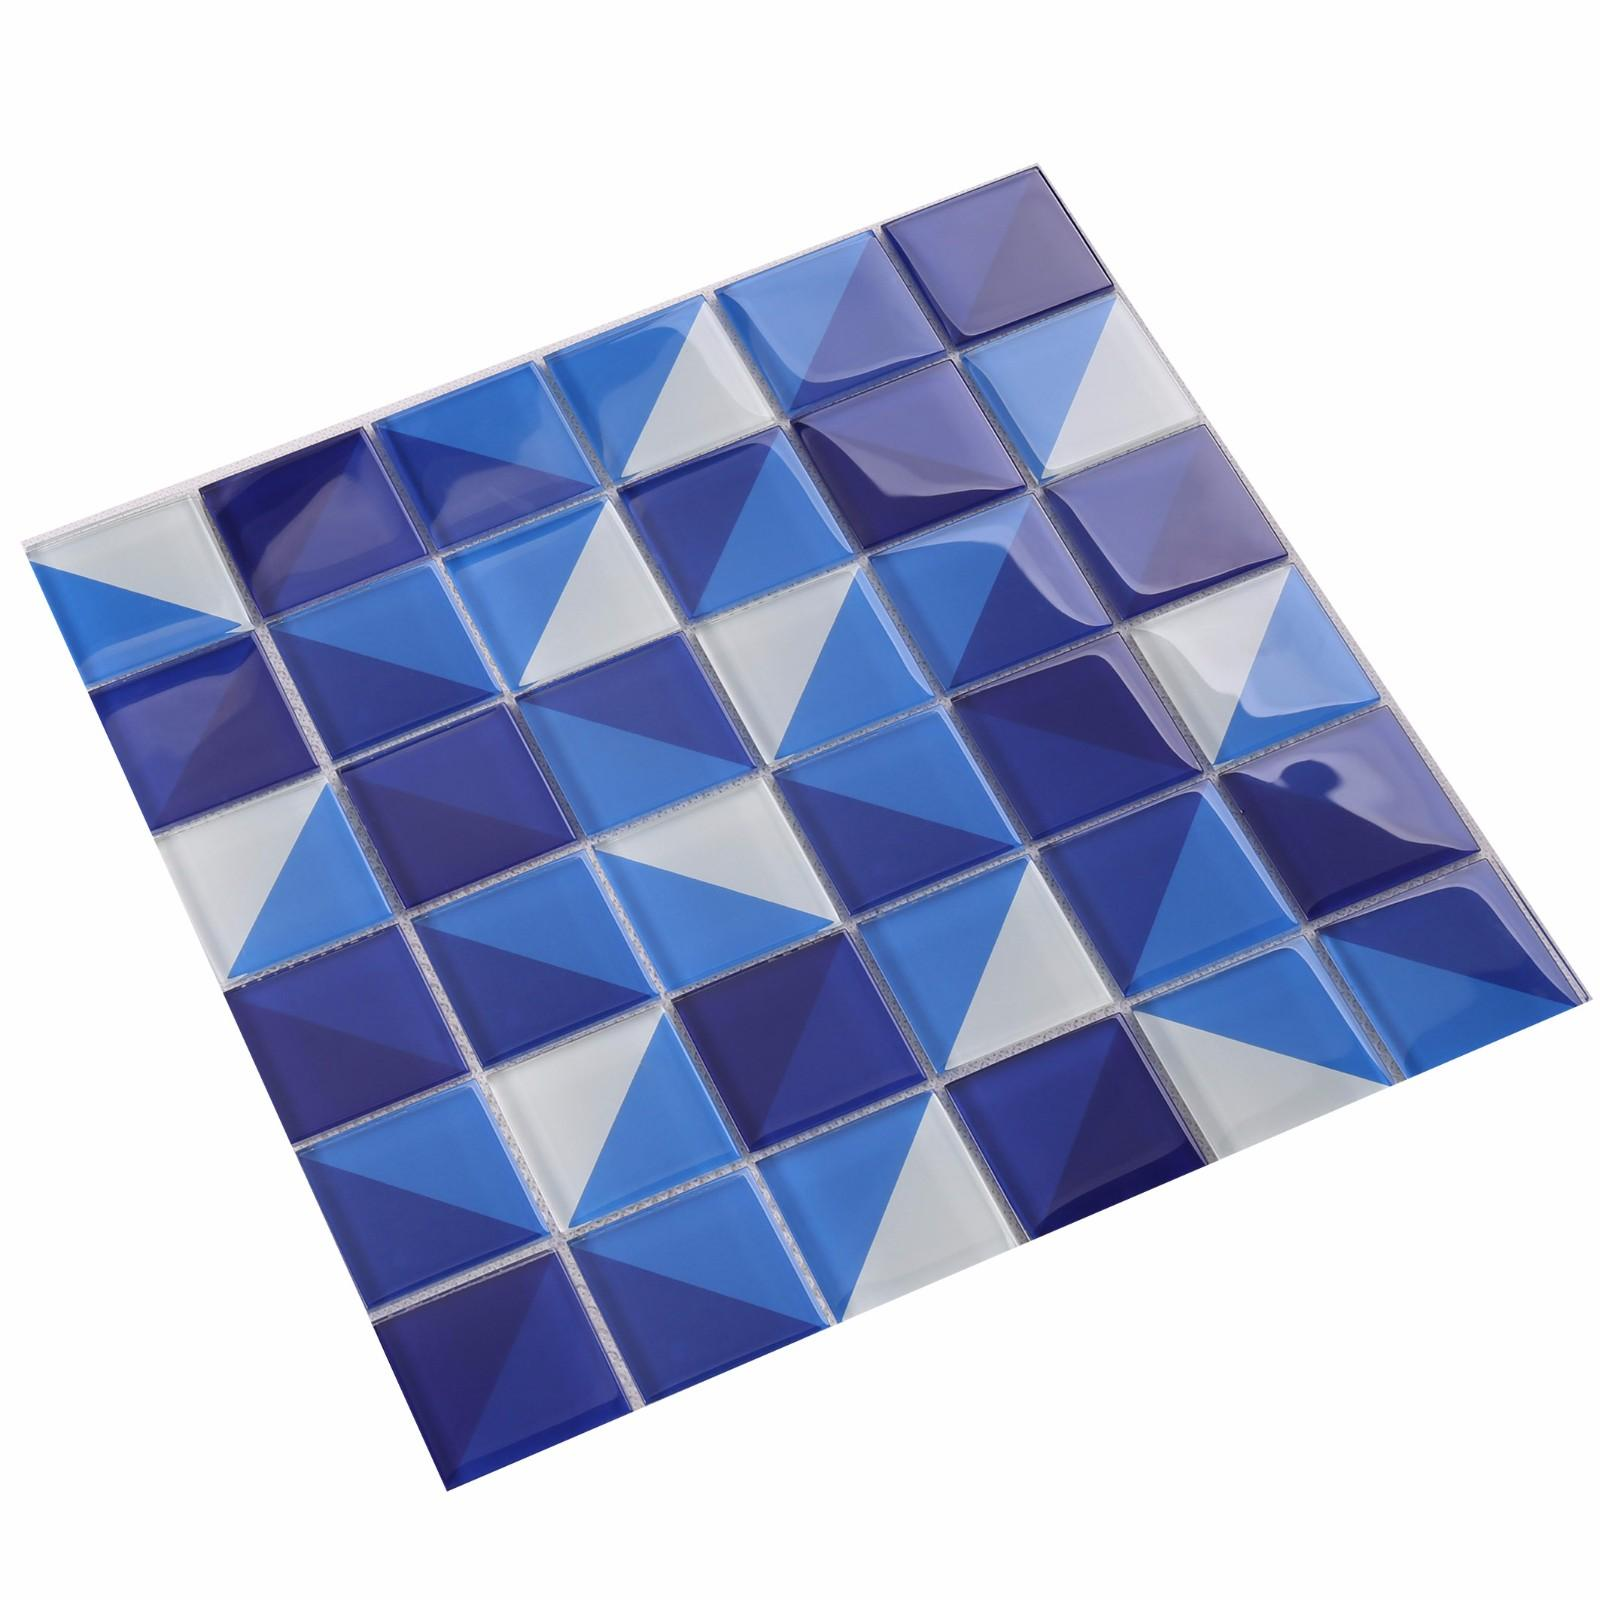 Heng Xing Wholesale grey glass mosaic tiles company for spa-3